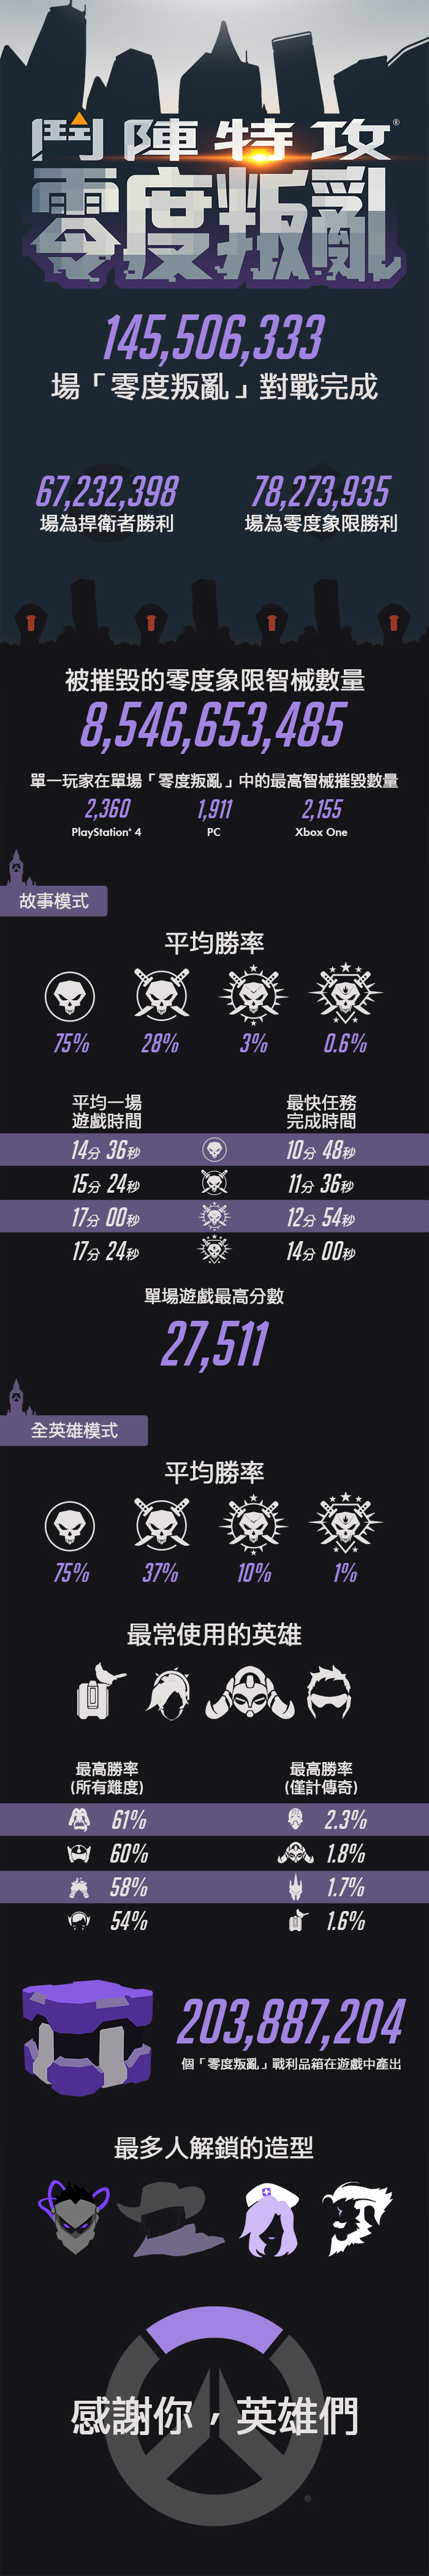 OWUprising-Infographic-Final_OW_JP.png